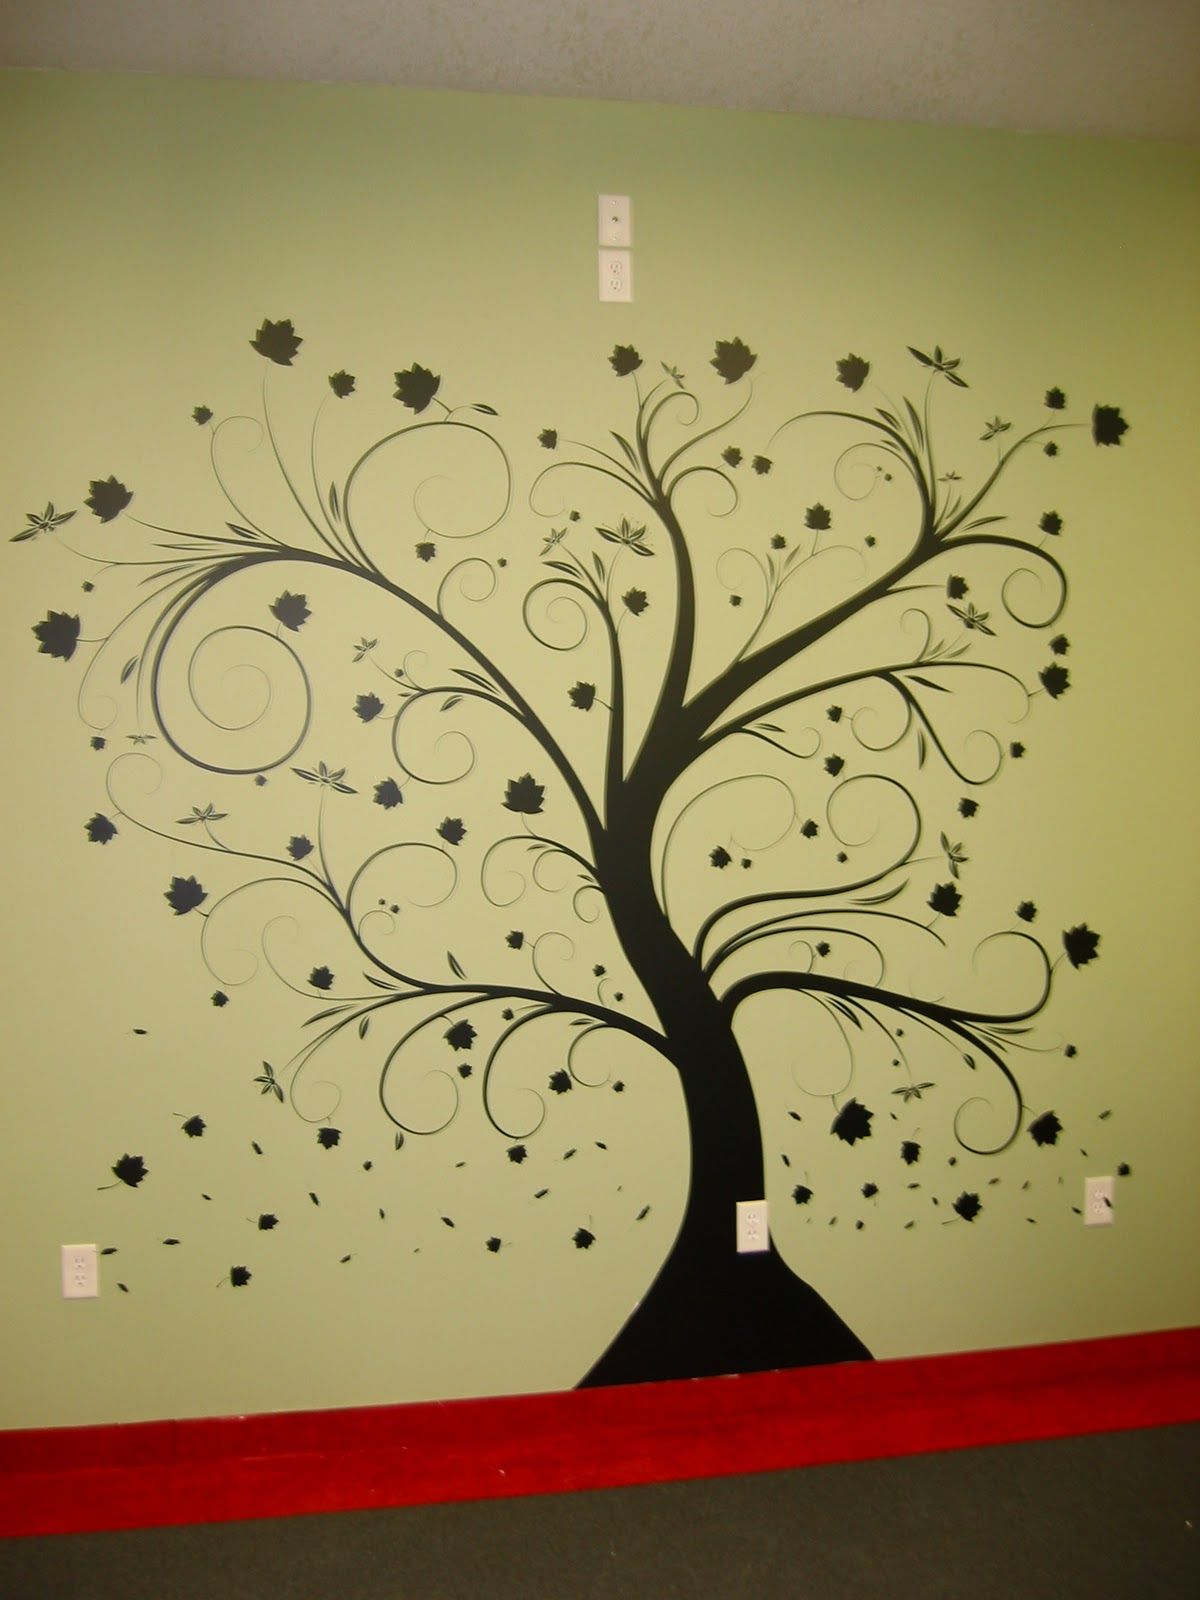 Painting walls ideas wall decals - Find This Pin And More On Interior Home Decor Wall Paint